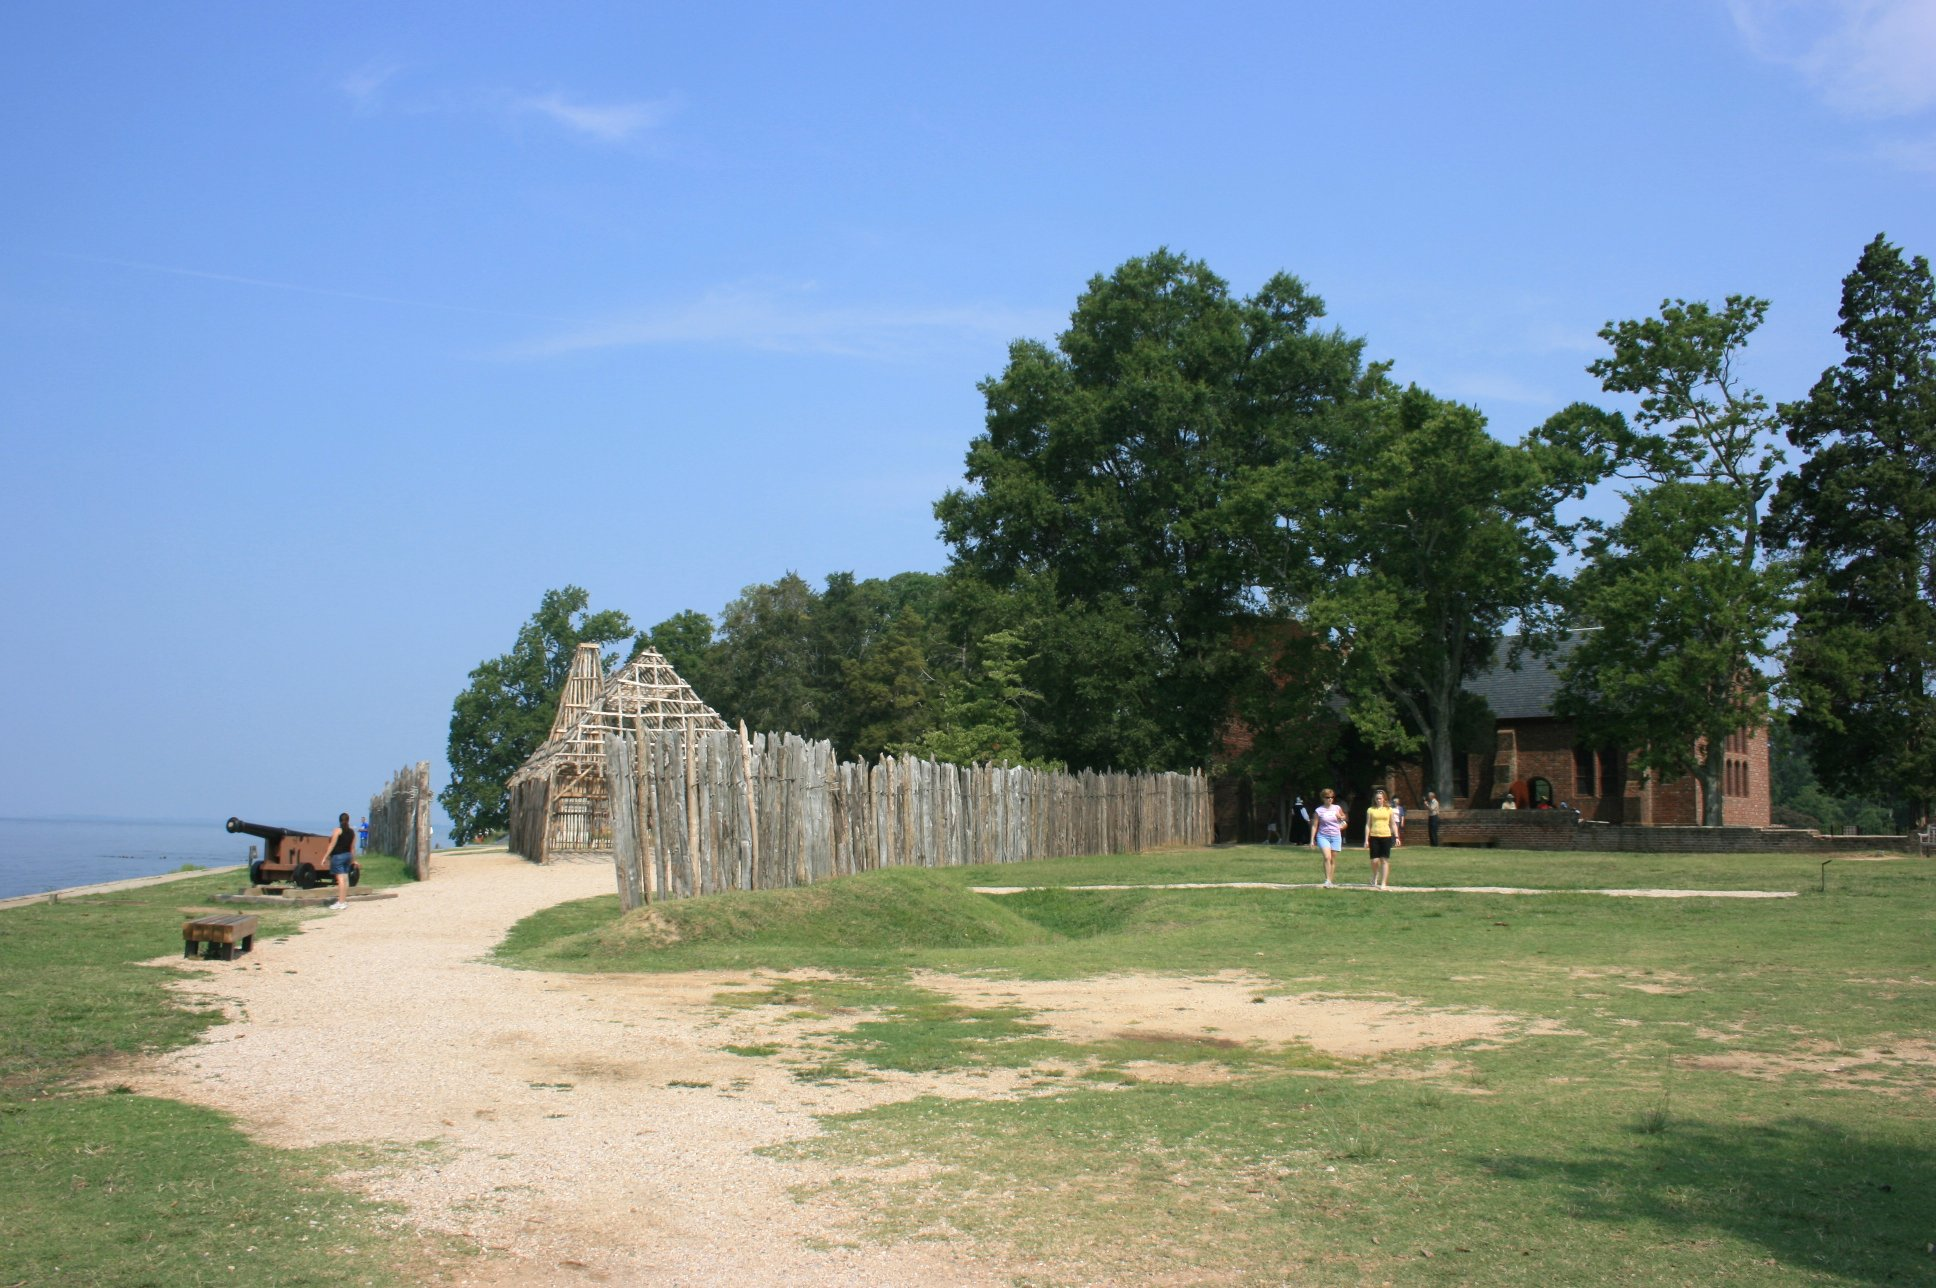 Historic Jamestown (2007) by Roflmueller on Wikimedia Commons (CC BY-SA 3.0)